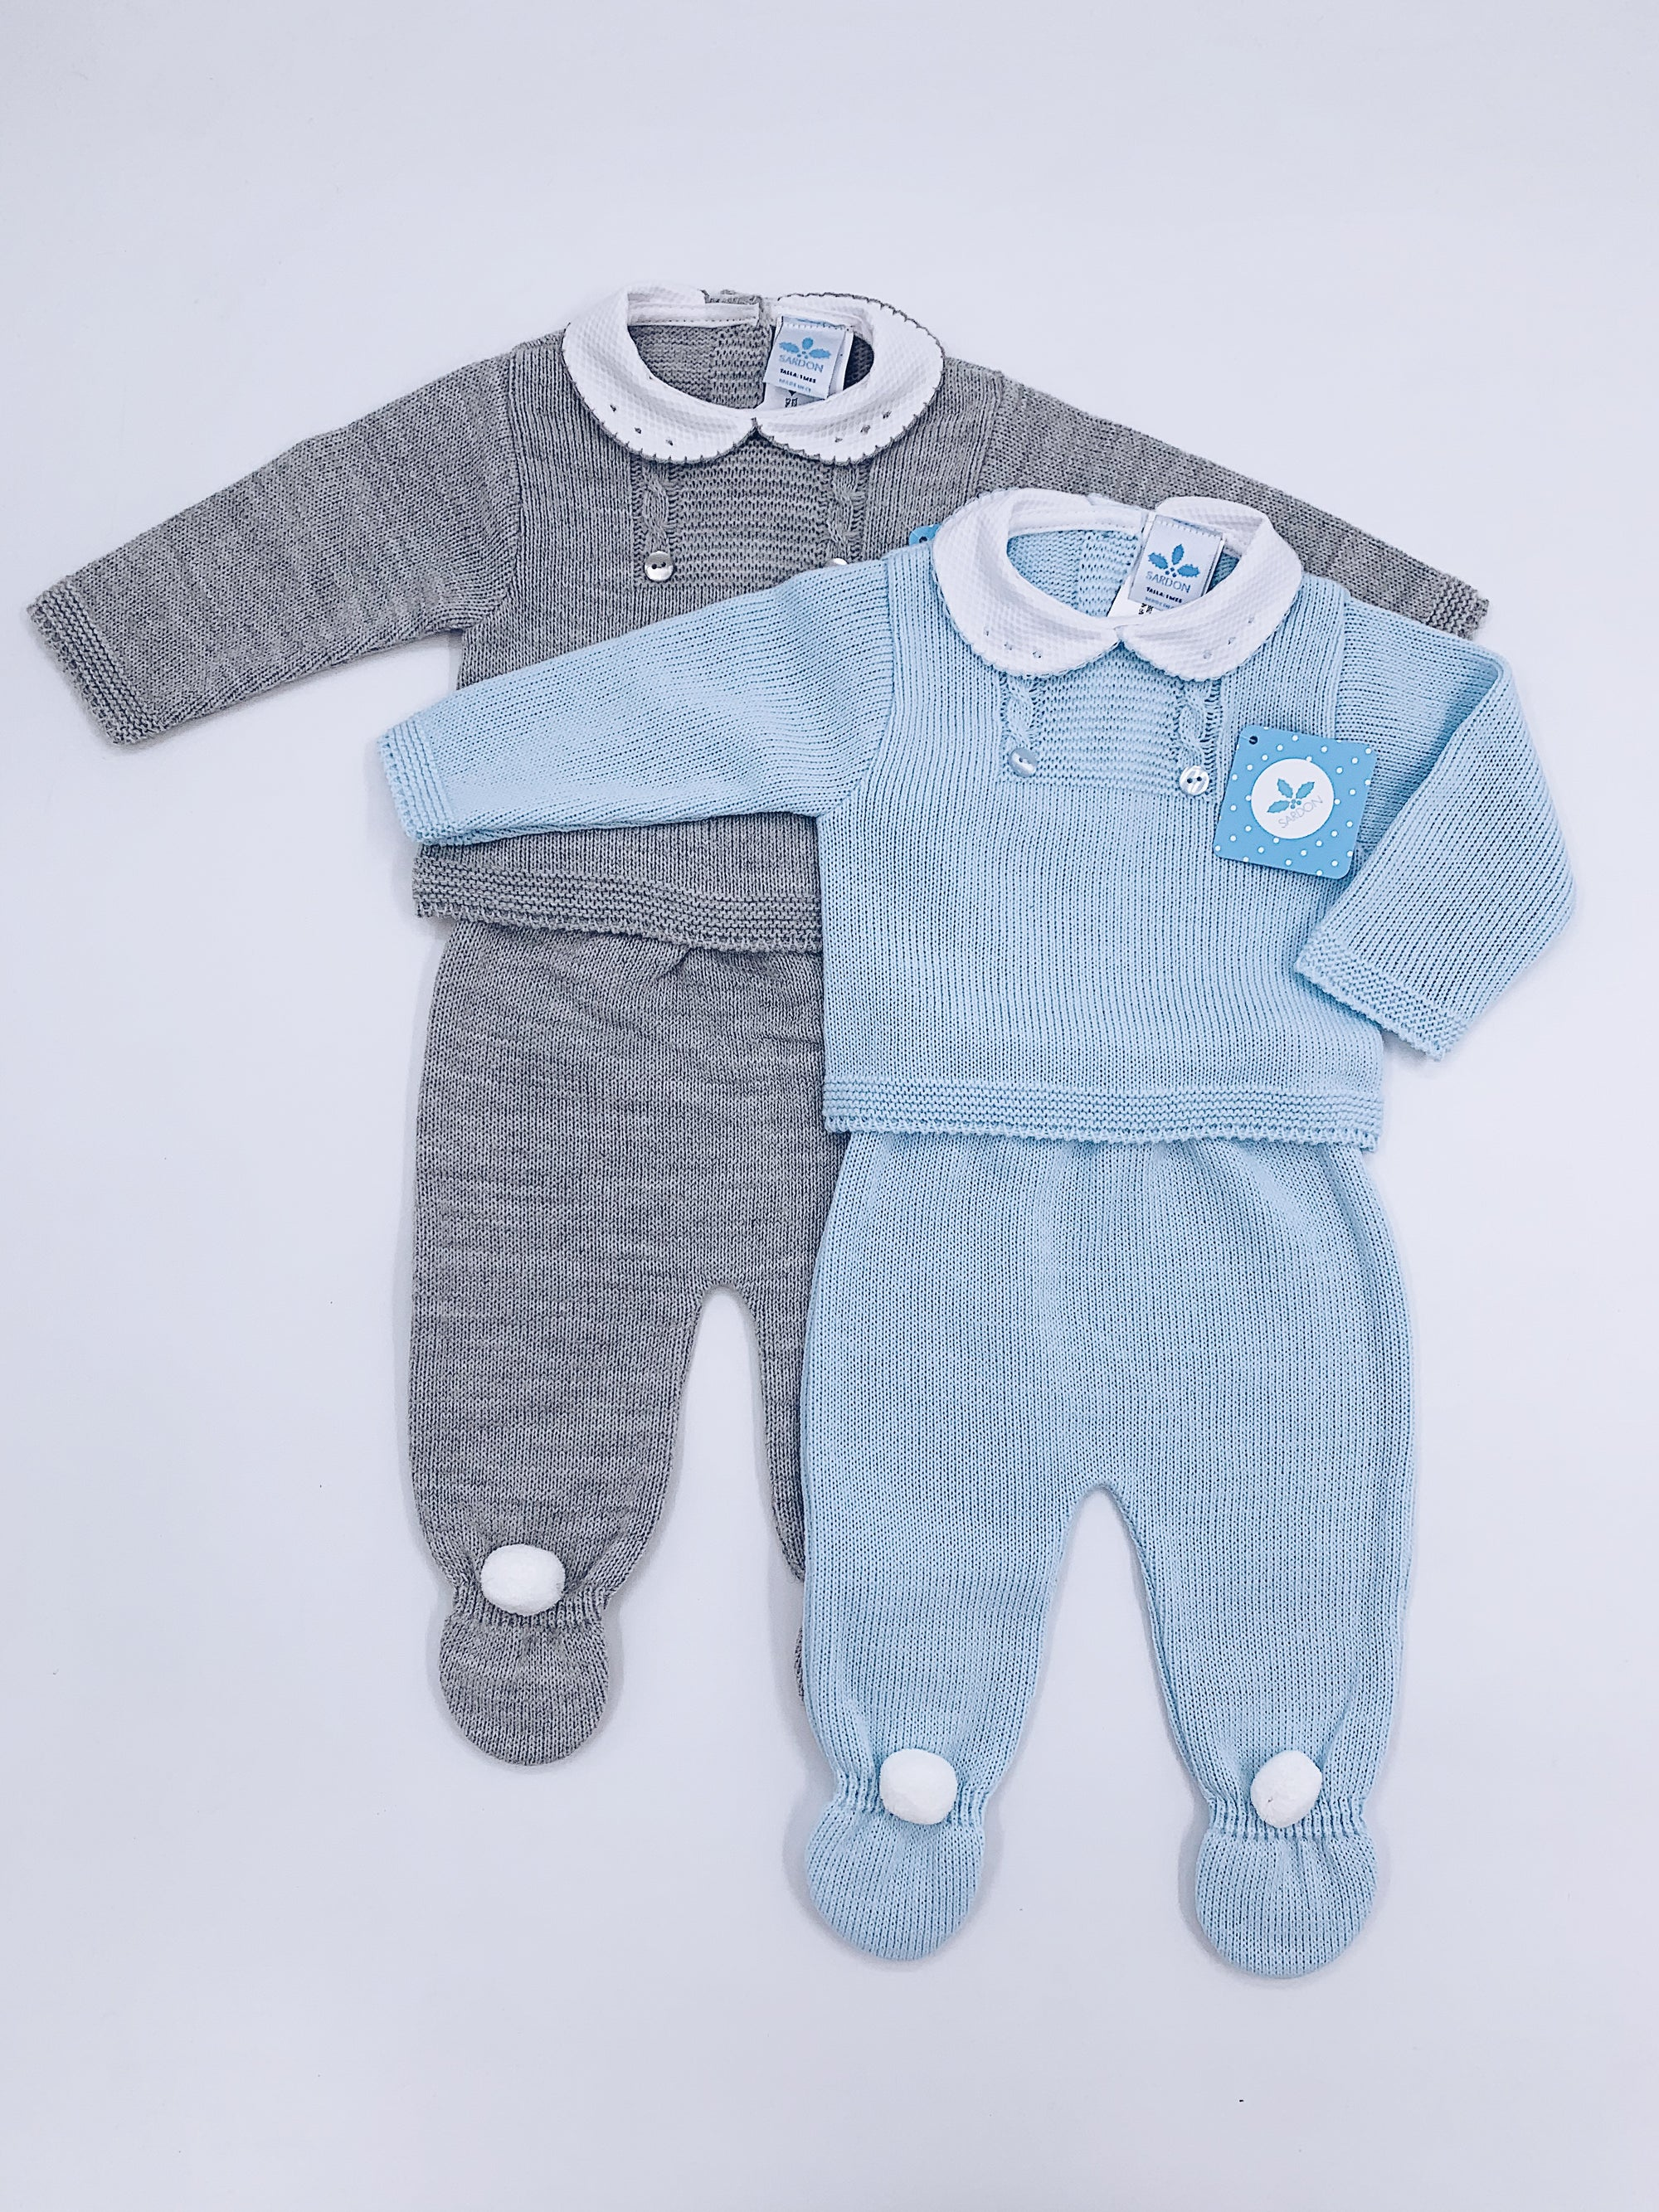 Knitted Baby 2 piece set (Top and leggings)